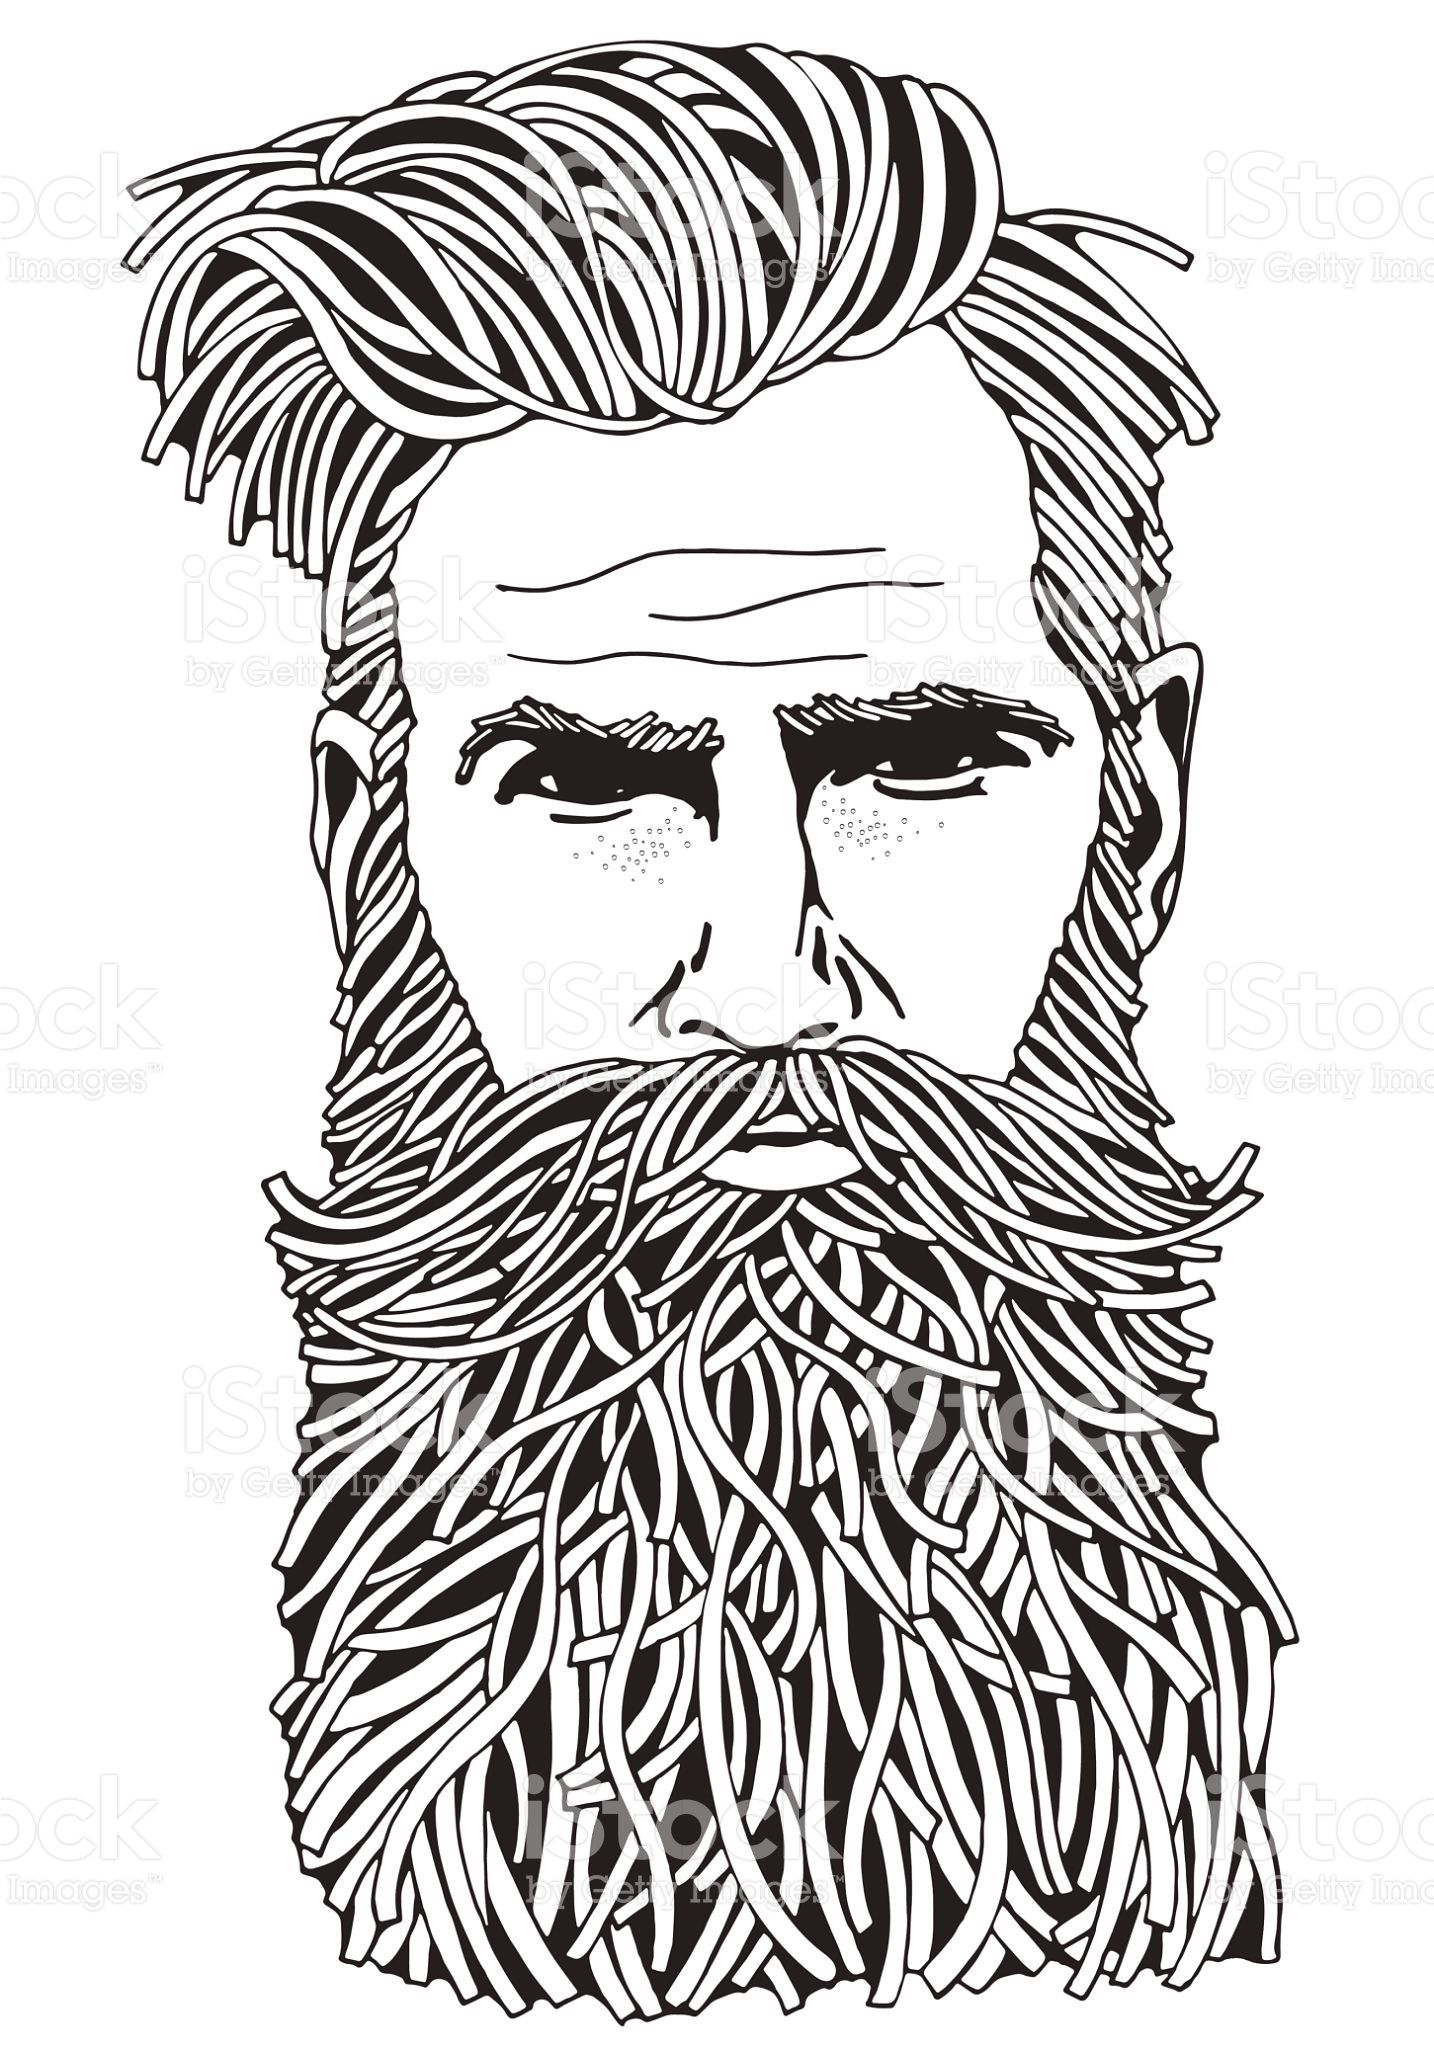 Bearded hipster man coloring book page for adult illustracion libre de derechos libre de derechos